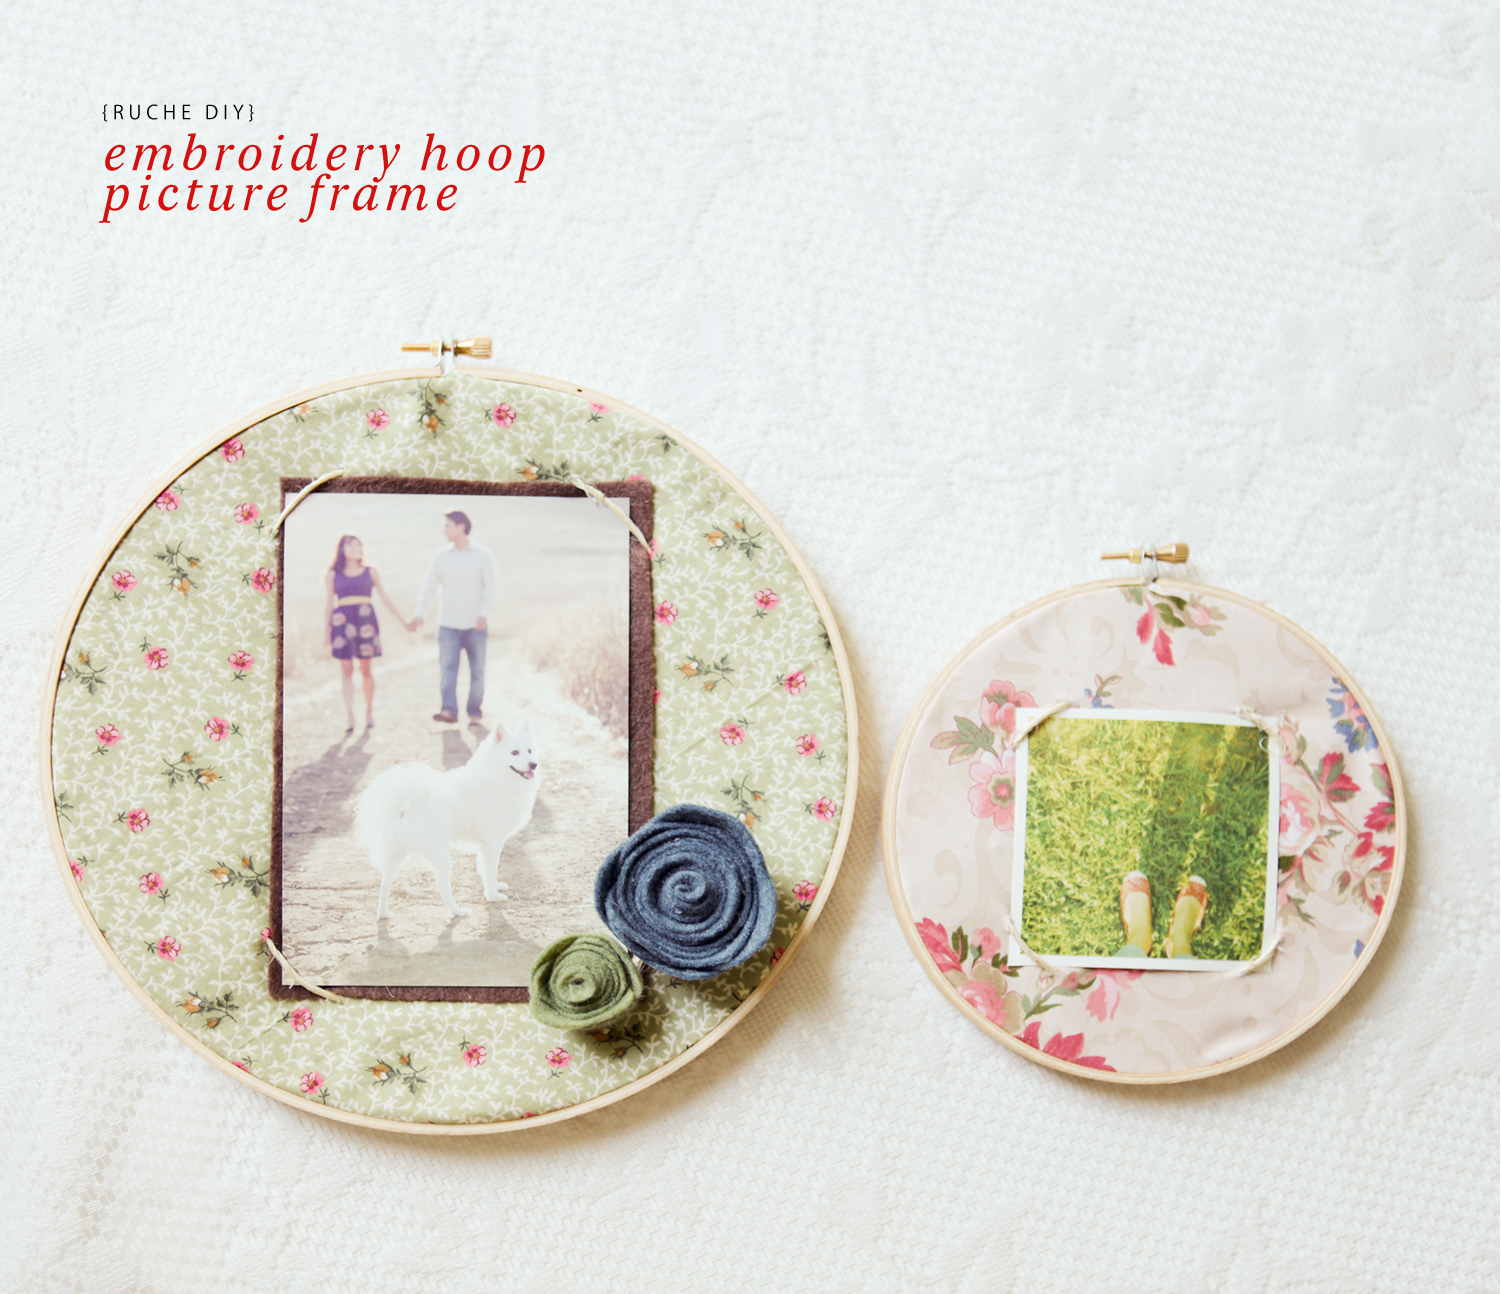 Ruche project diy embroidery hoop picture frame